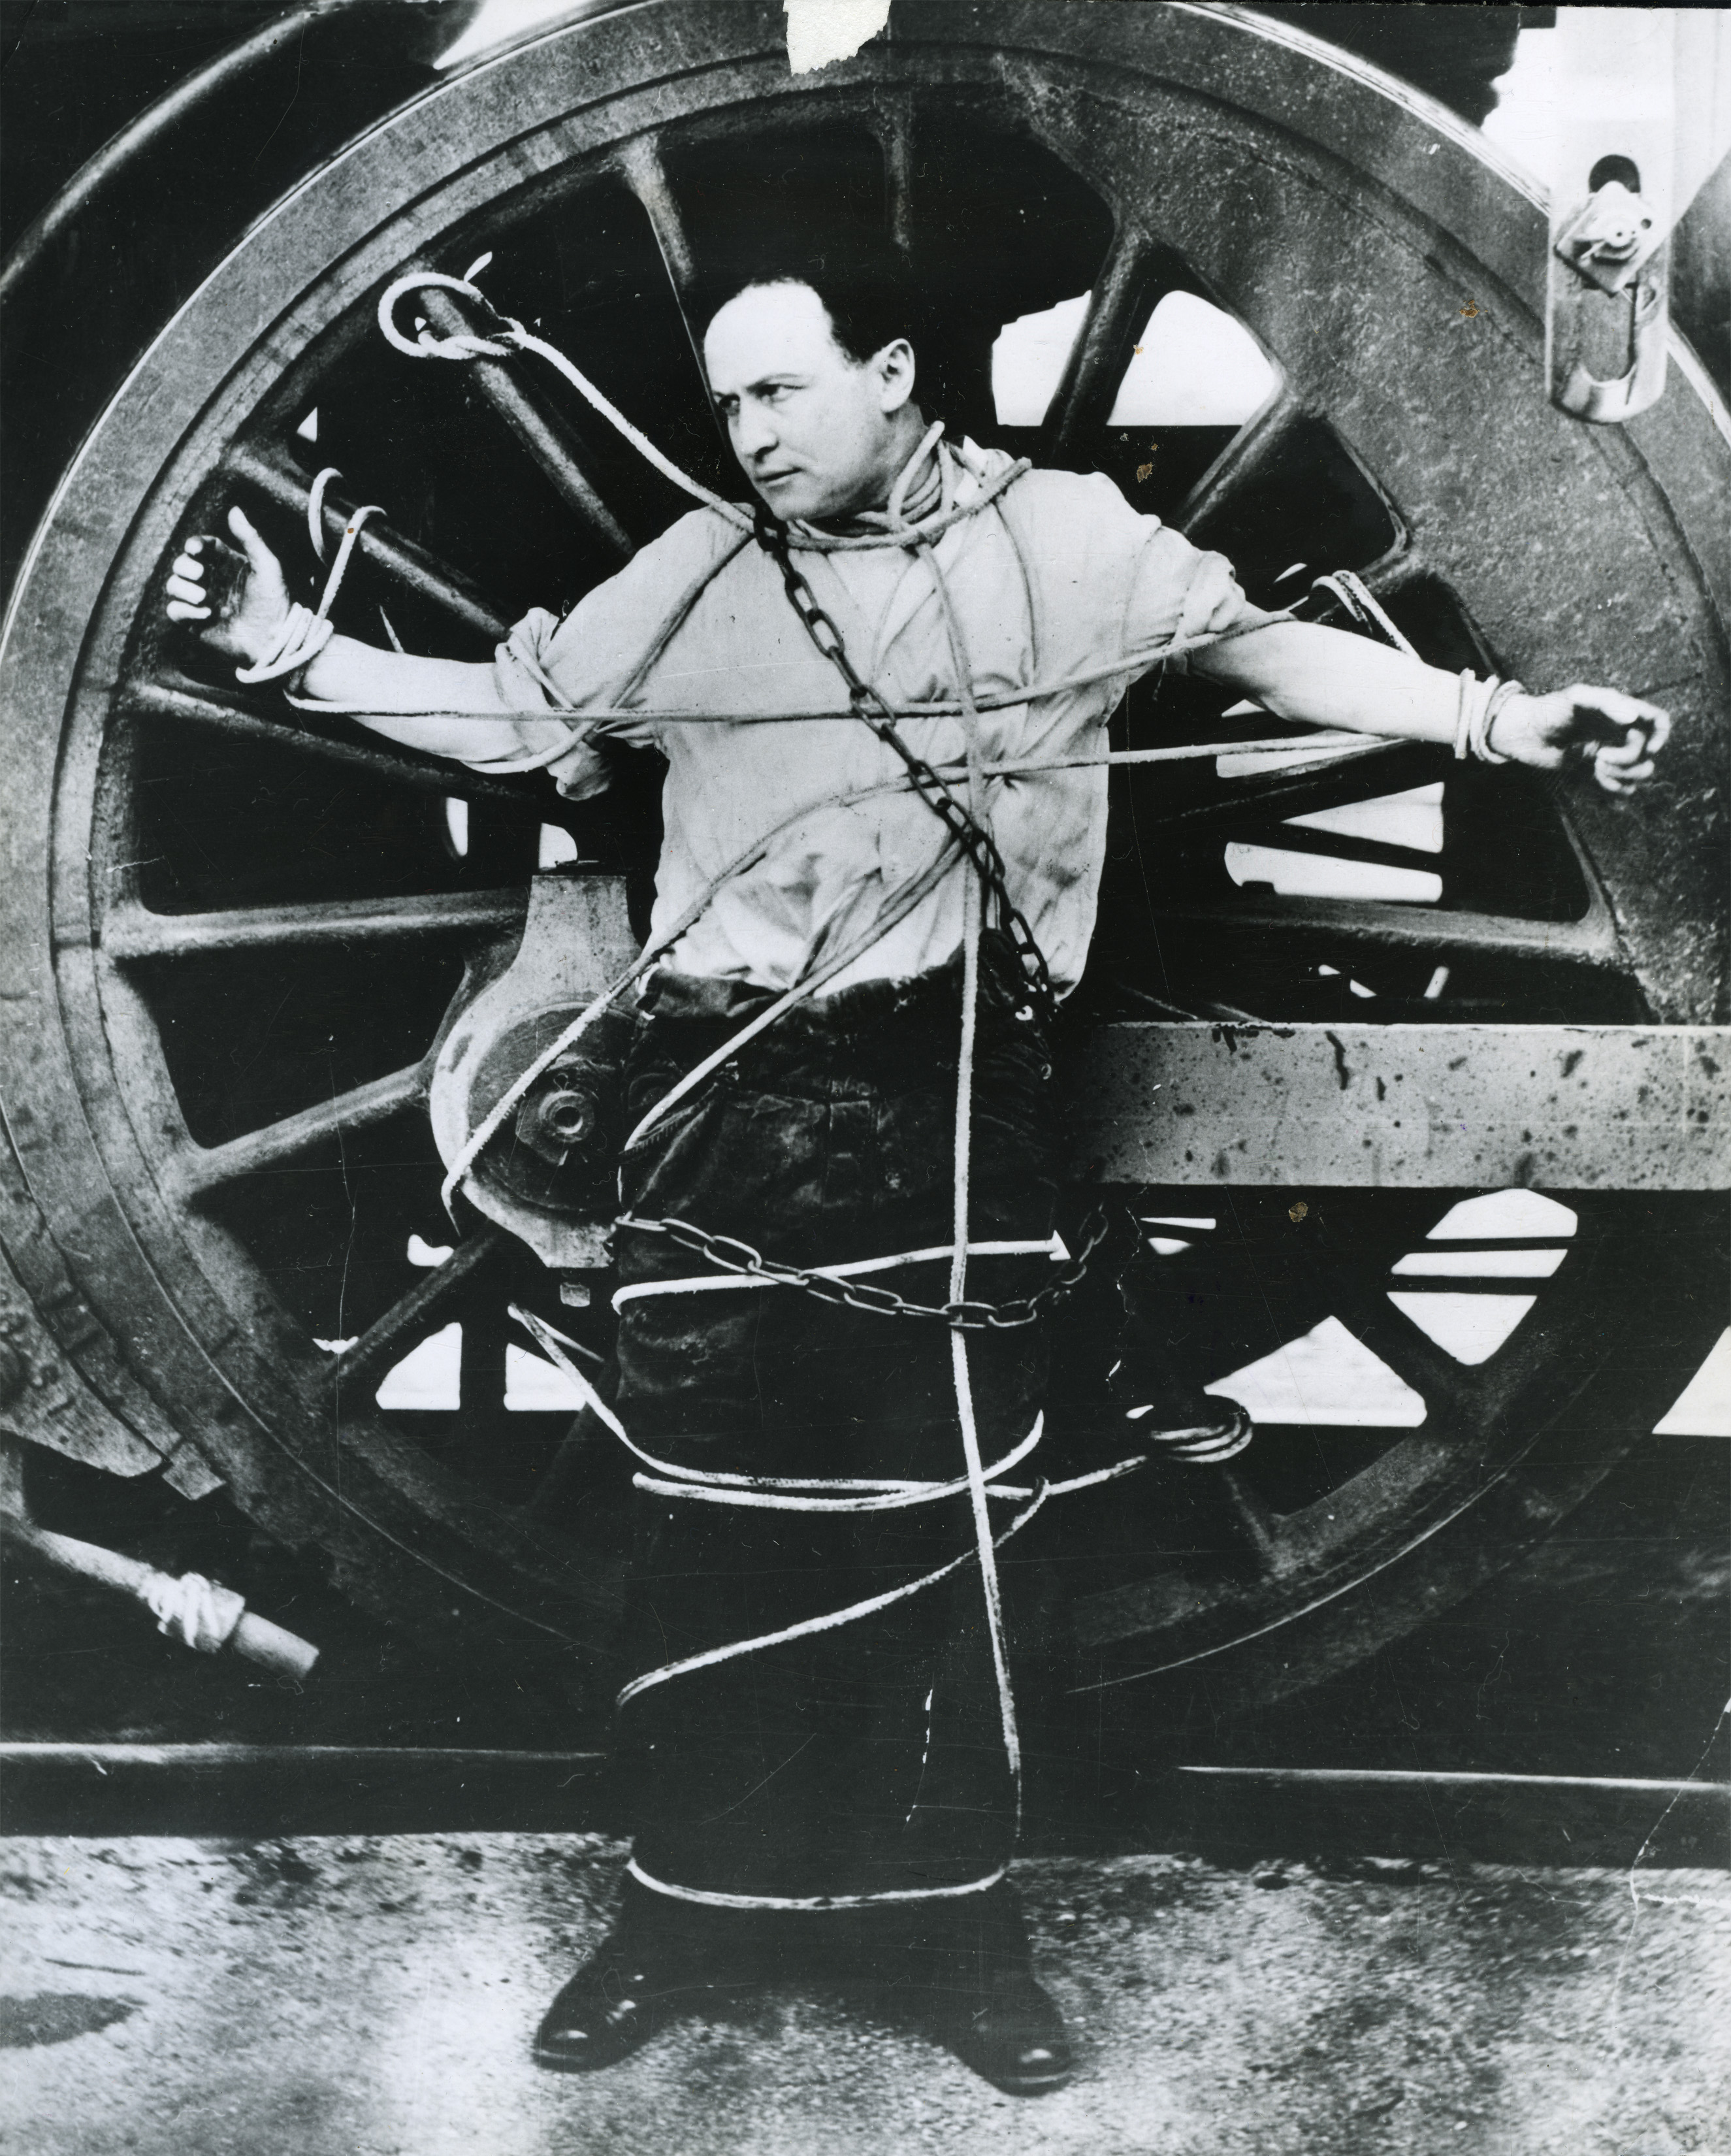 Houdini chains himself to a locomotive wheel for an escape attempt.